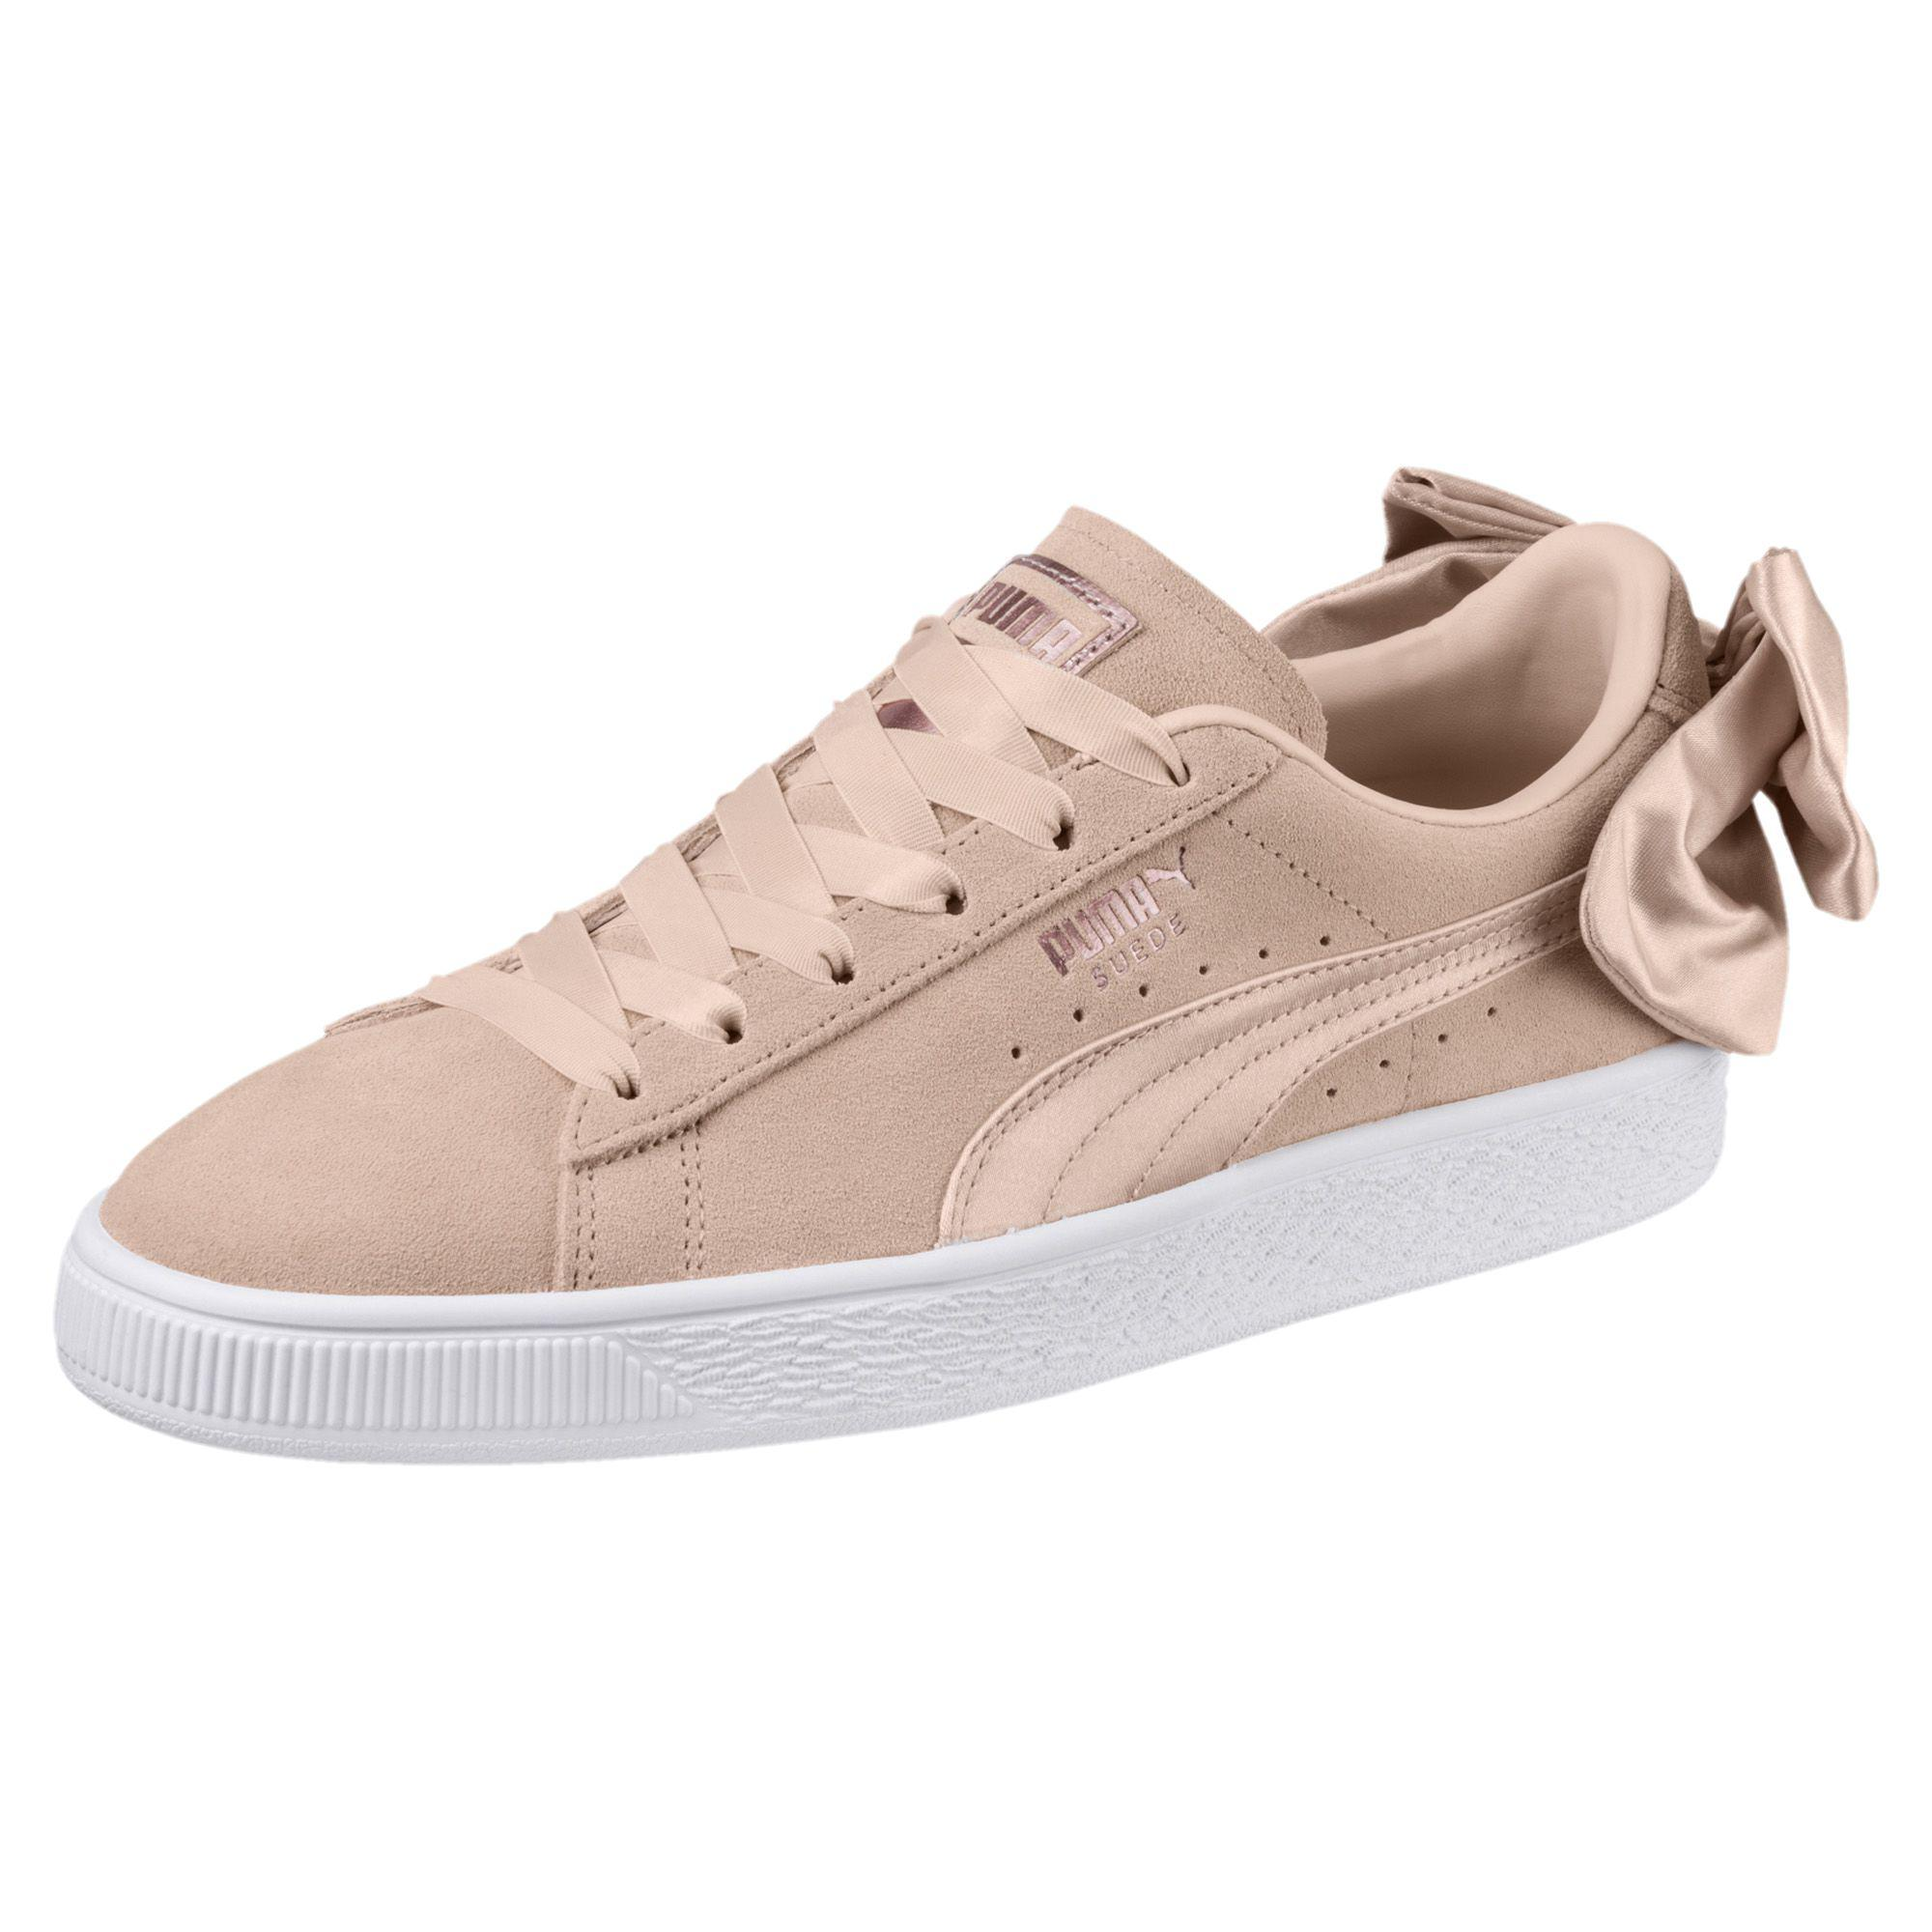 000e5bcdf39be0 Lyst - PUMA Suede Bow Valentine Women s Sneakers